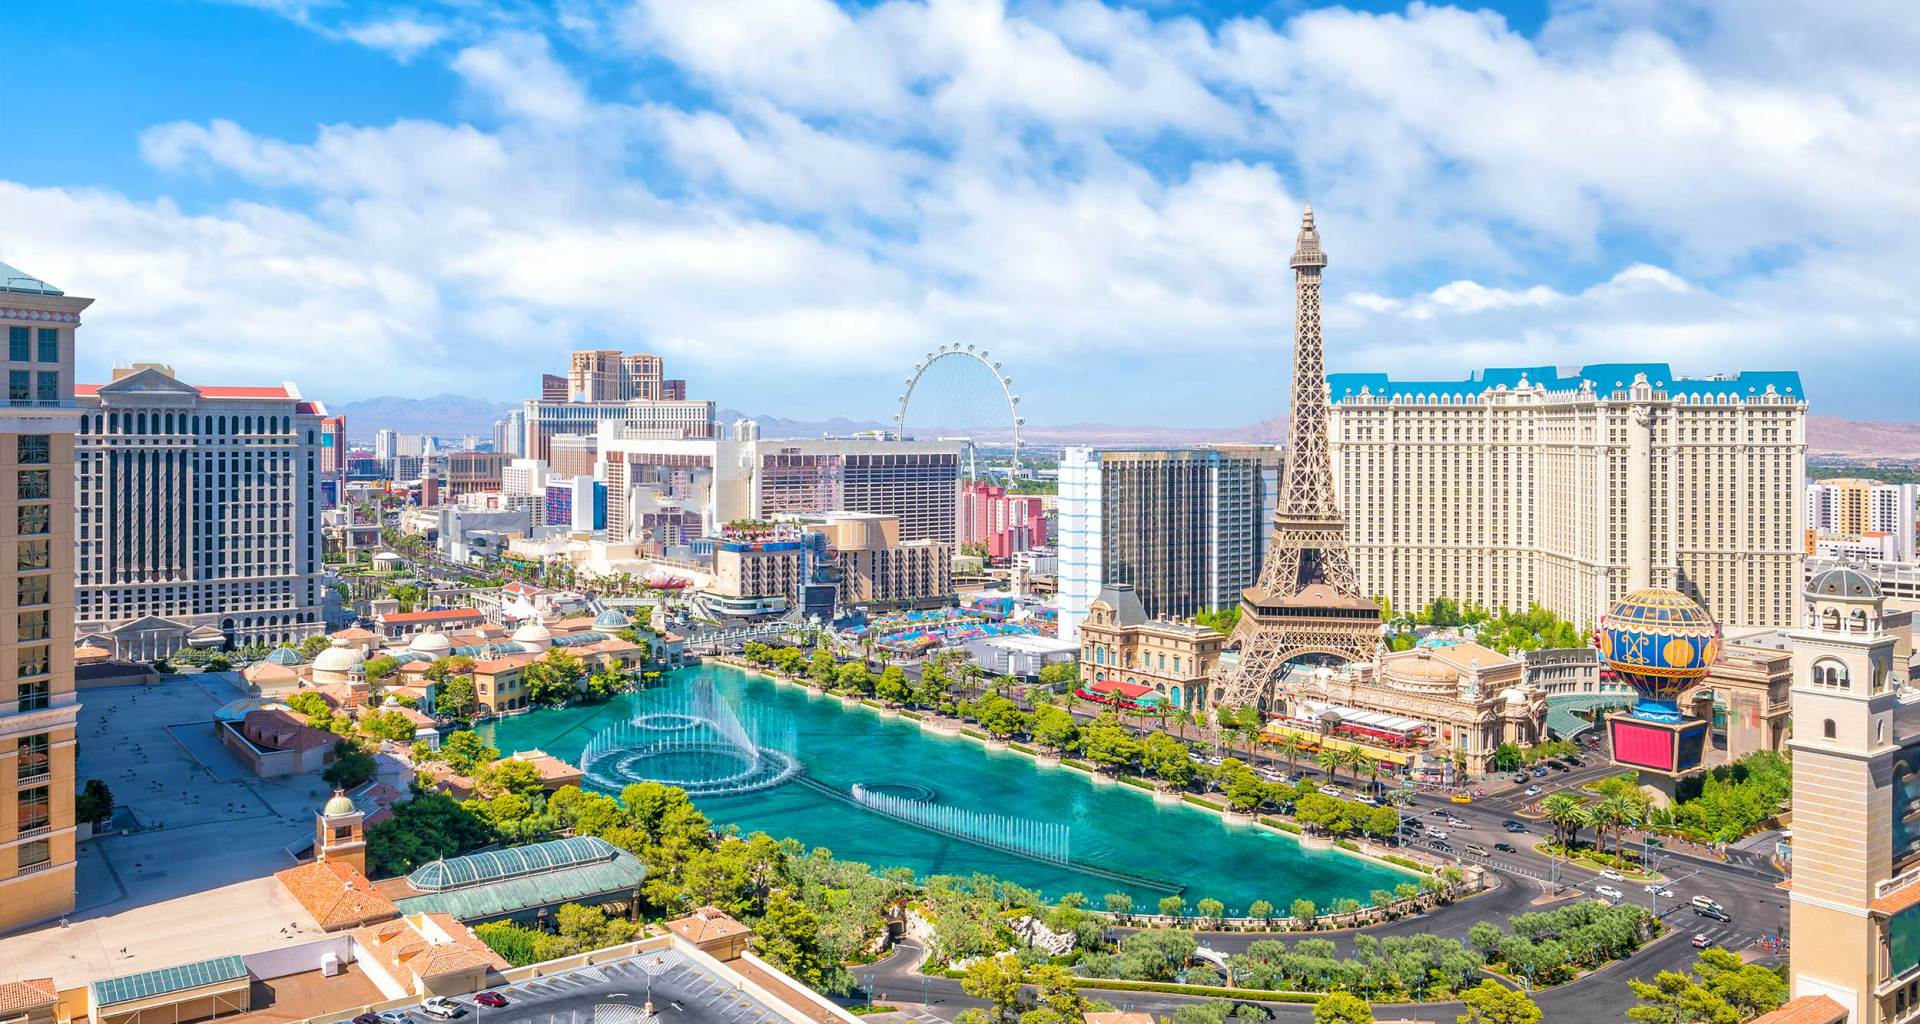 Las Vegas Wheelchair Accessible Travel Guide - WheelchairTravel.org